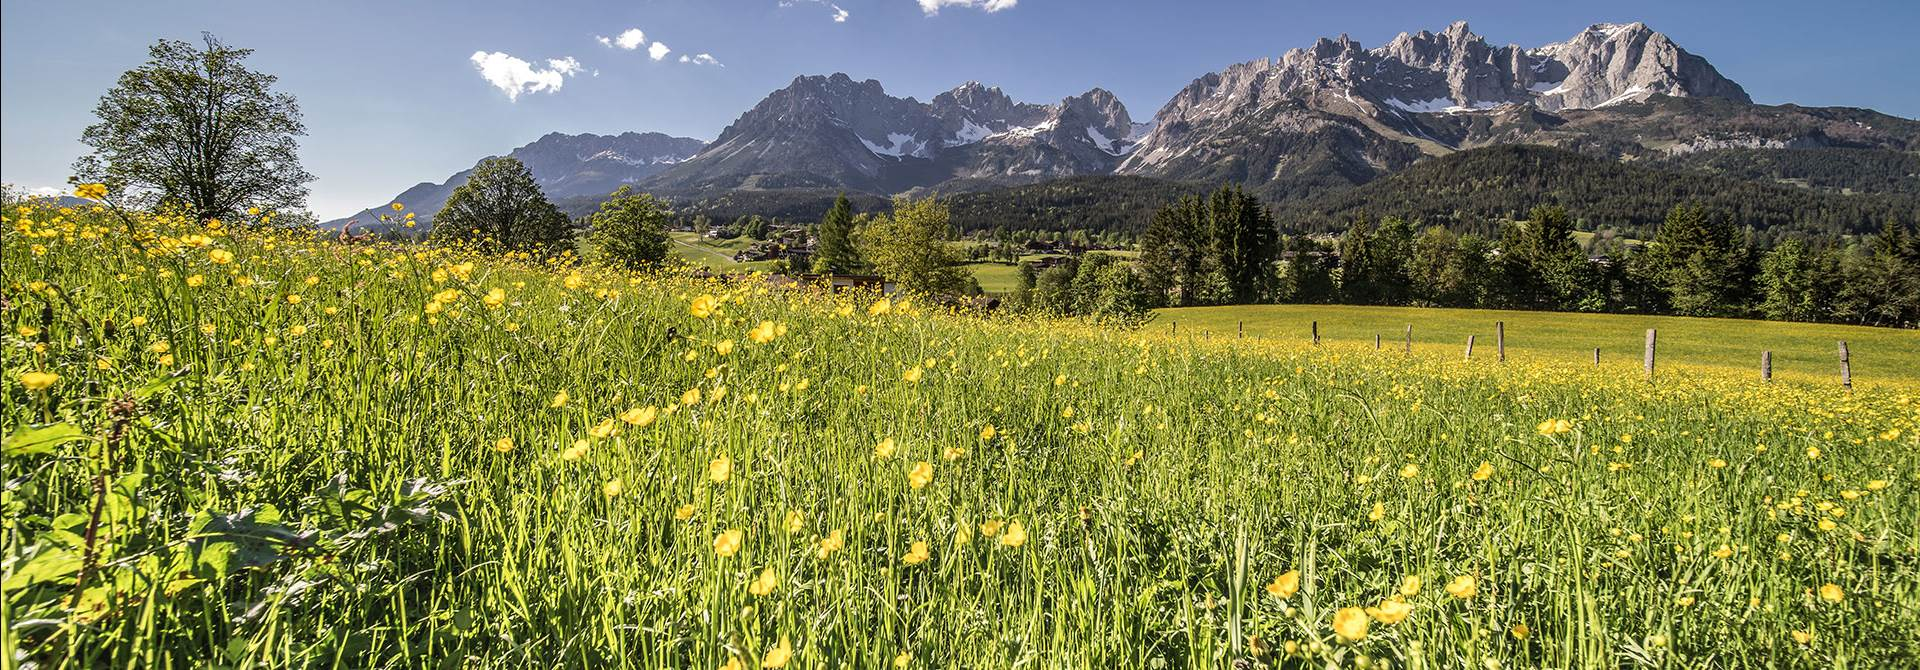 Flower meadow with a mountain panorama